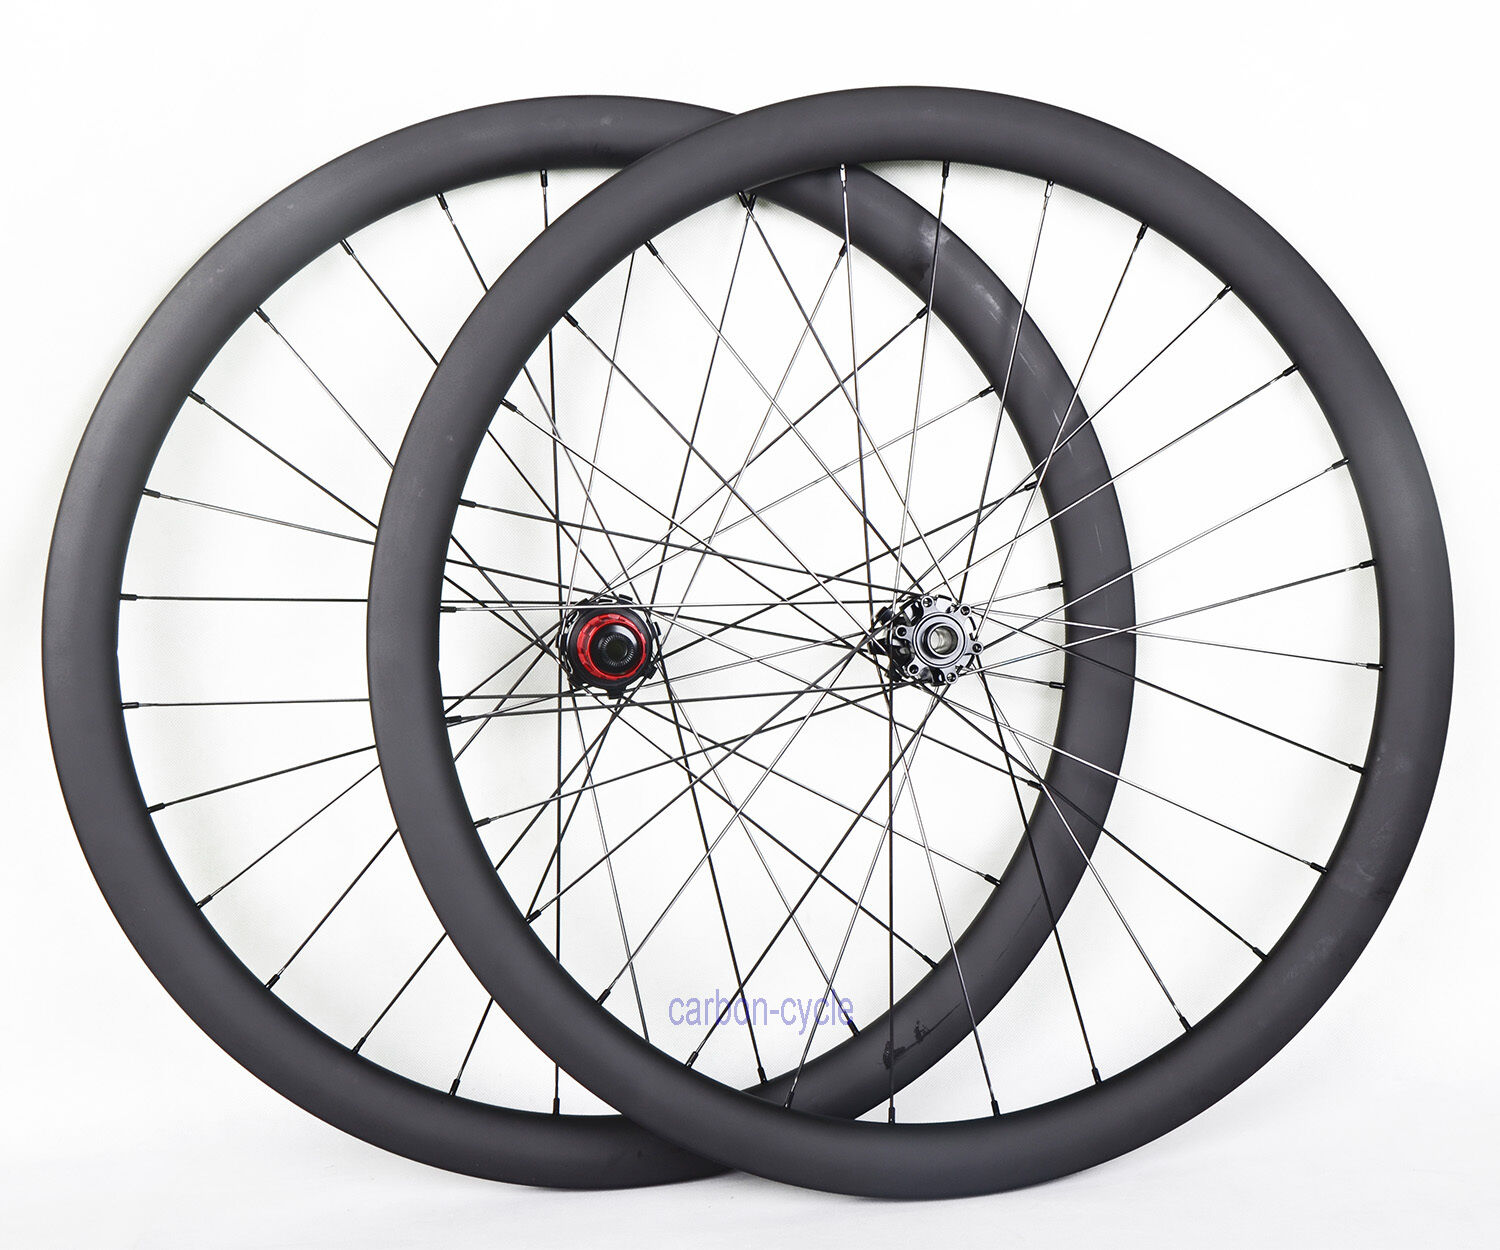 30mm Carbon Wheel Disc brake Tubular Cyclocross 700C Road Bike UD Matt DT spokes